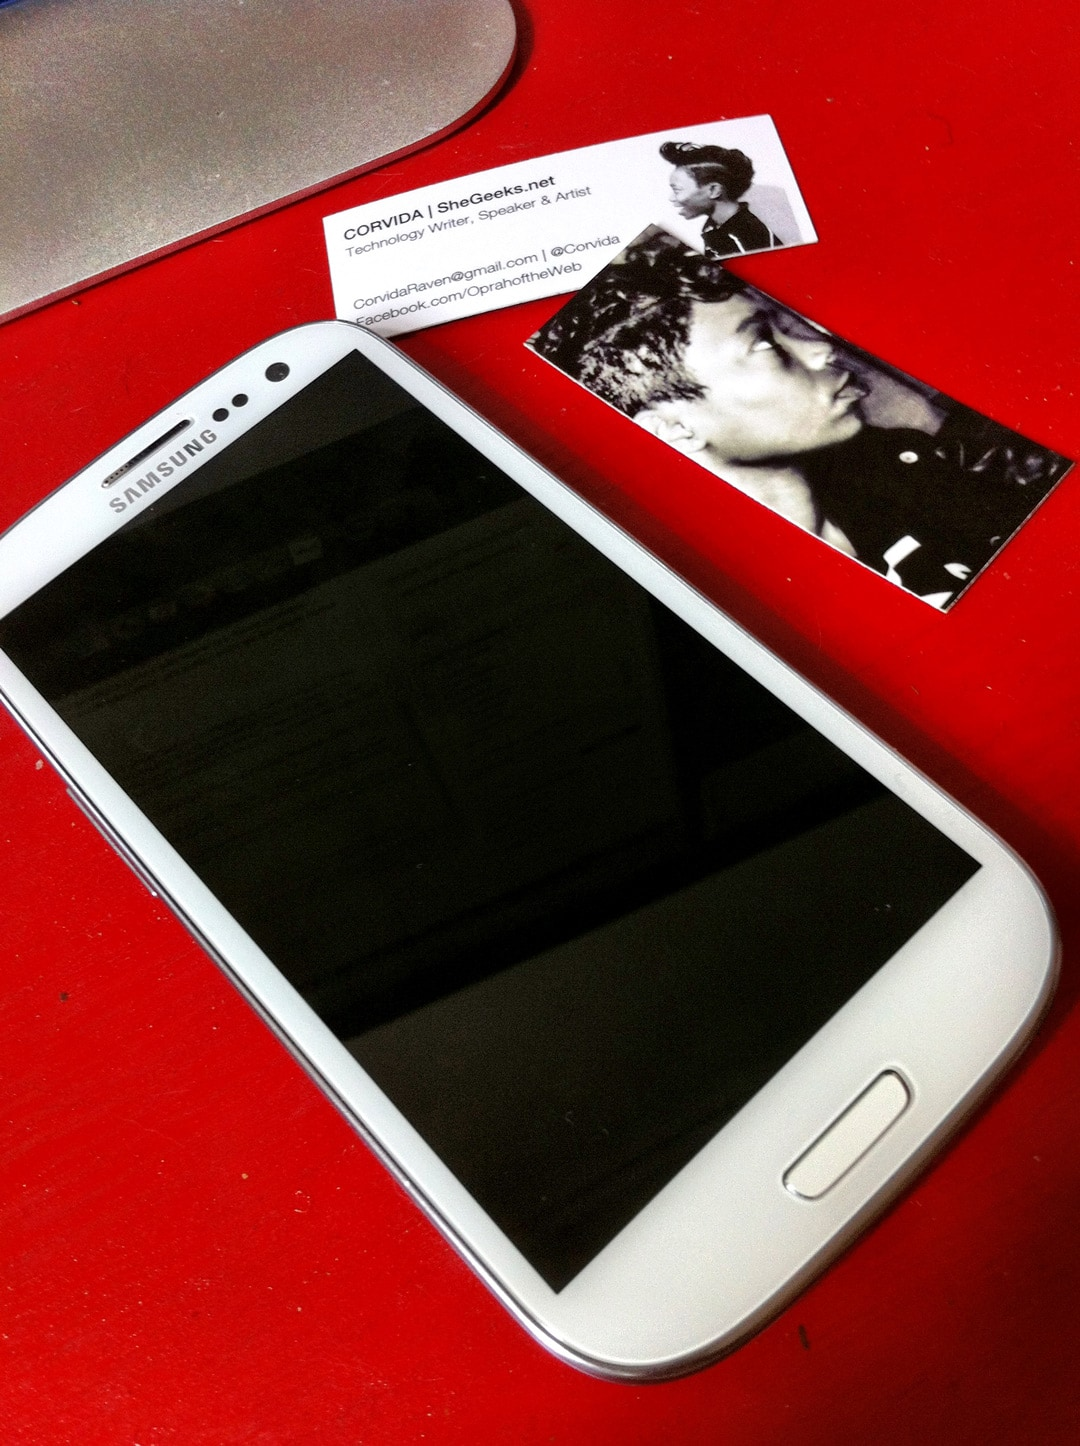 Samsung Galaxy S3 - SheGeeks Review